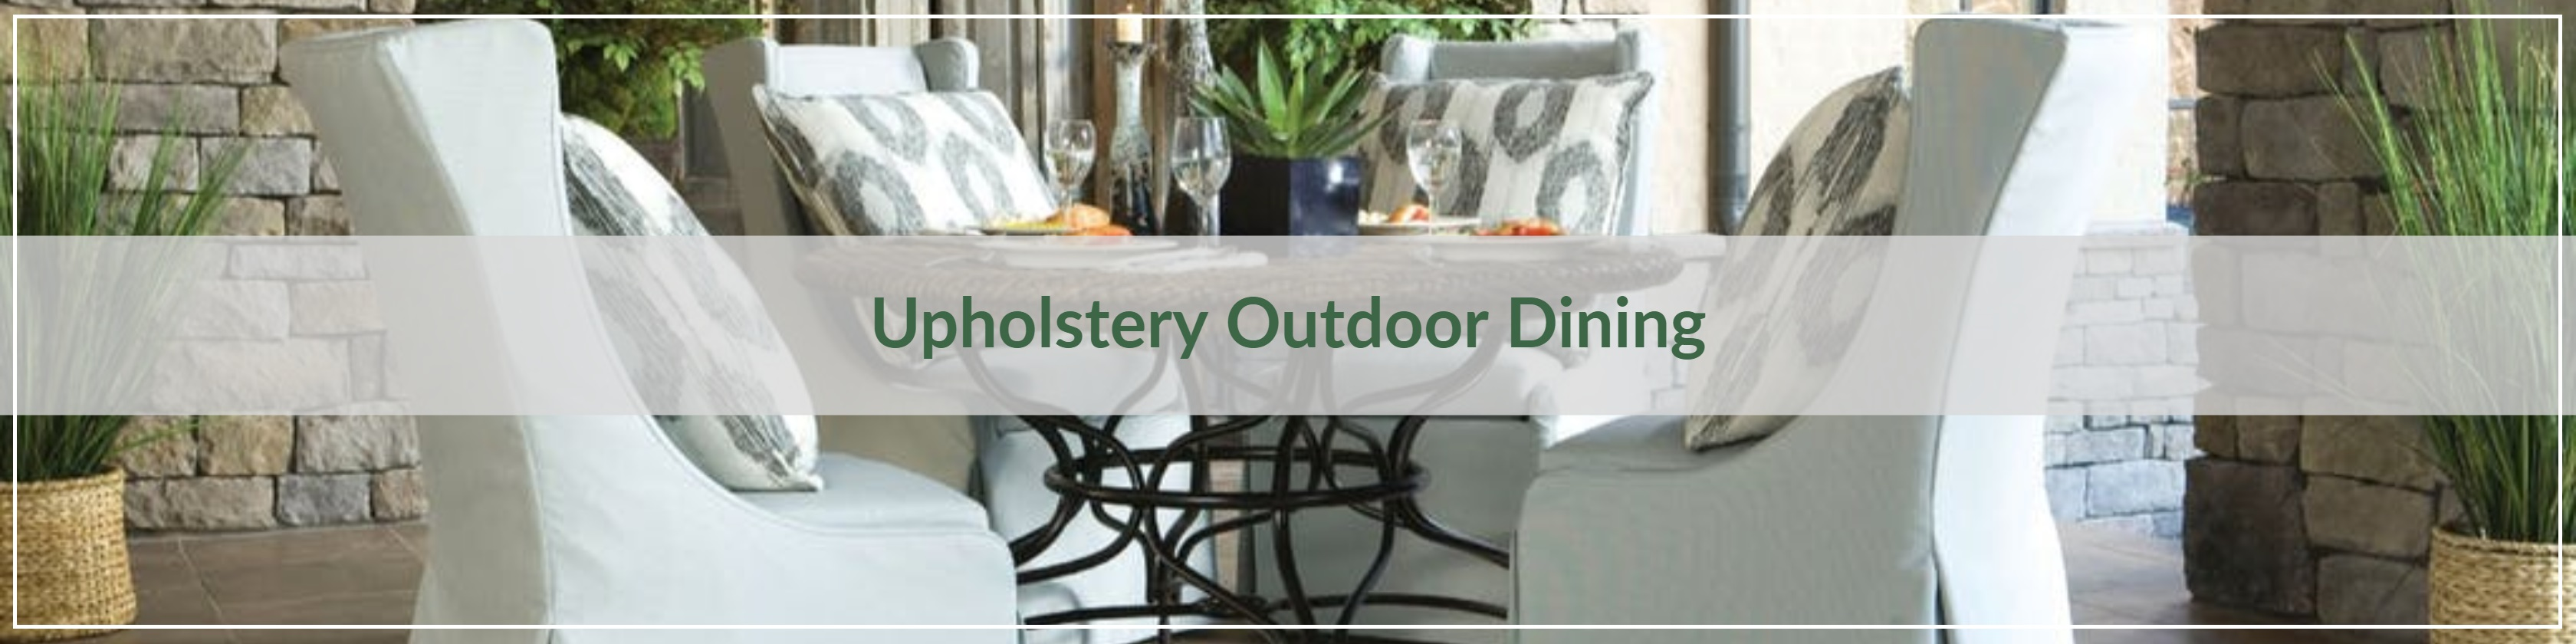 Upholstery Outdoor Dining